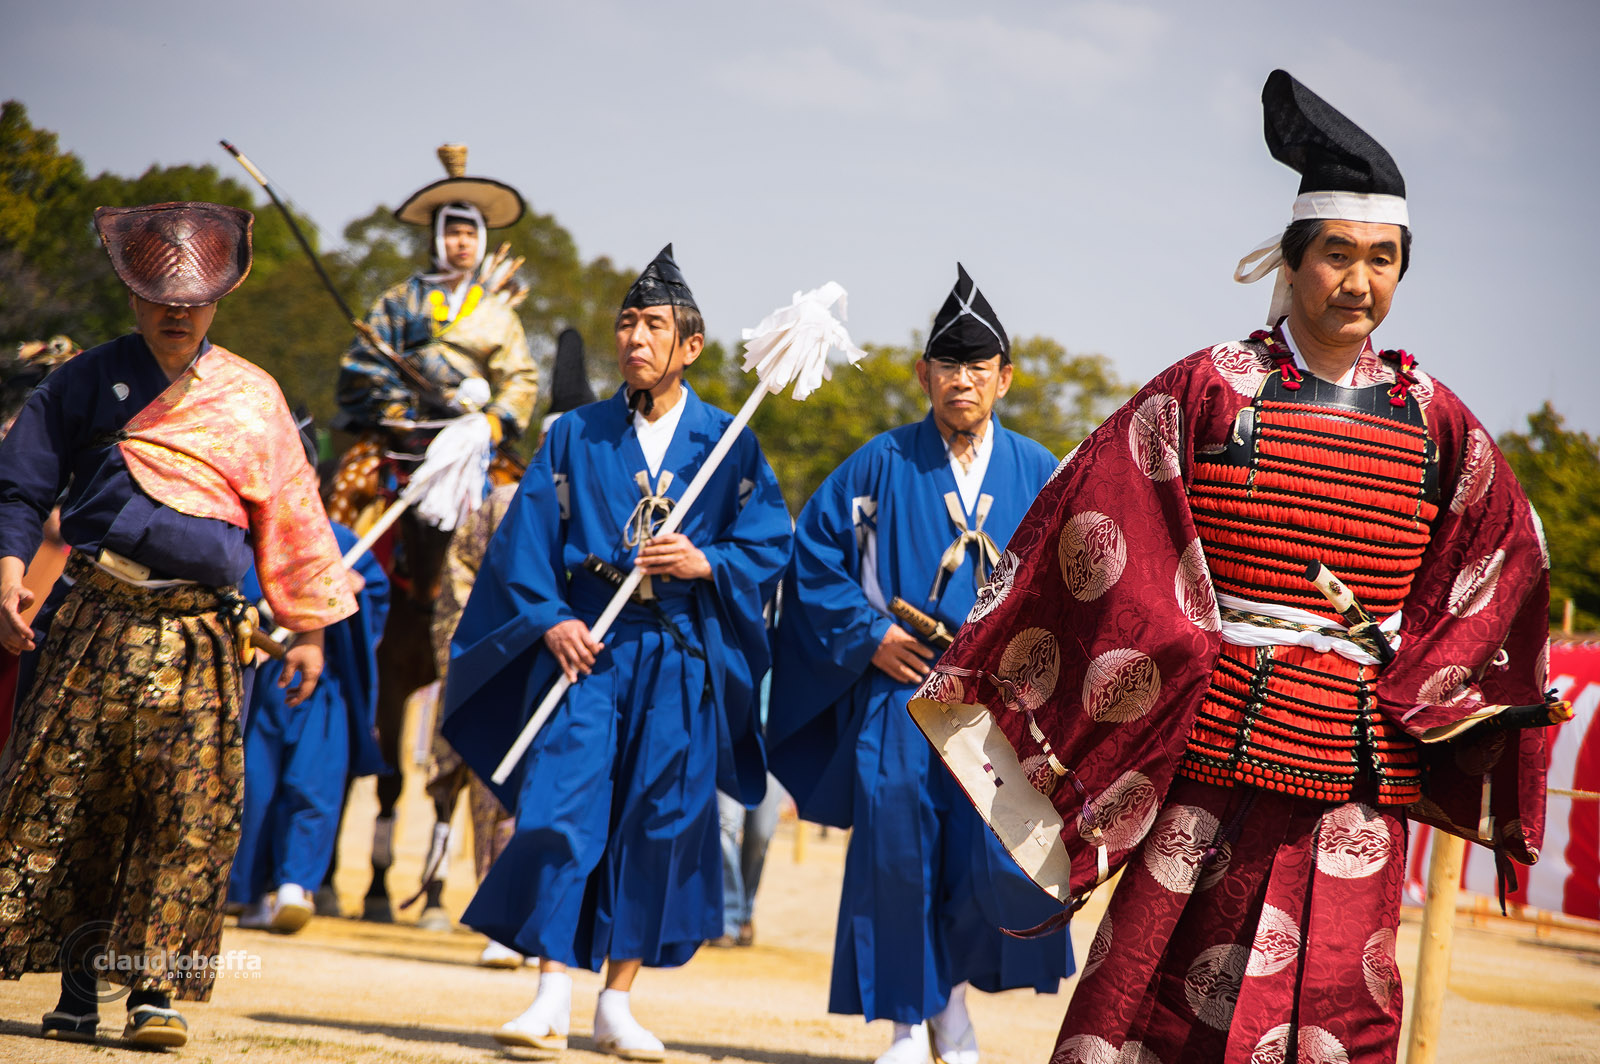 Japan, Yabusame, Traditional mounted archery, Parade of archers, judges and assistants